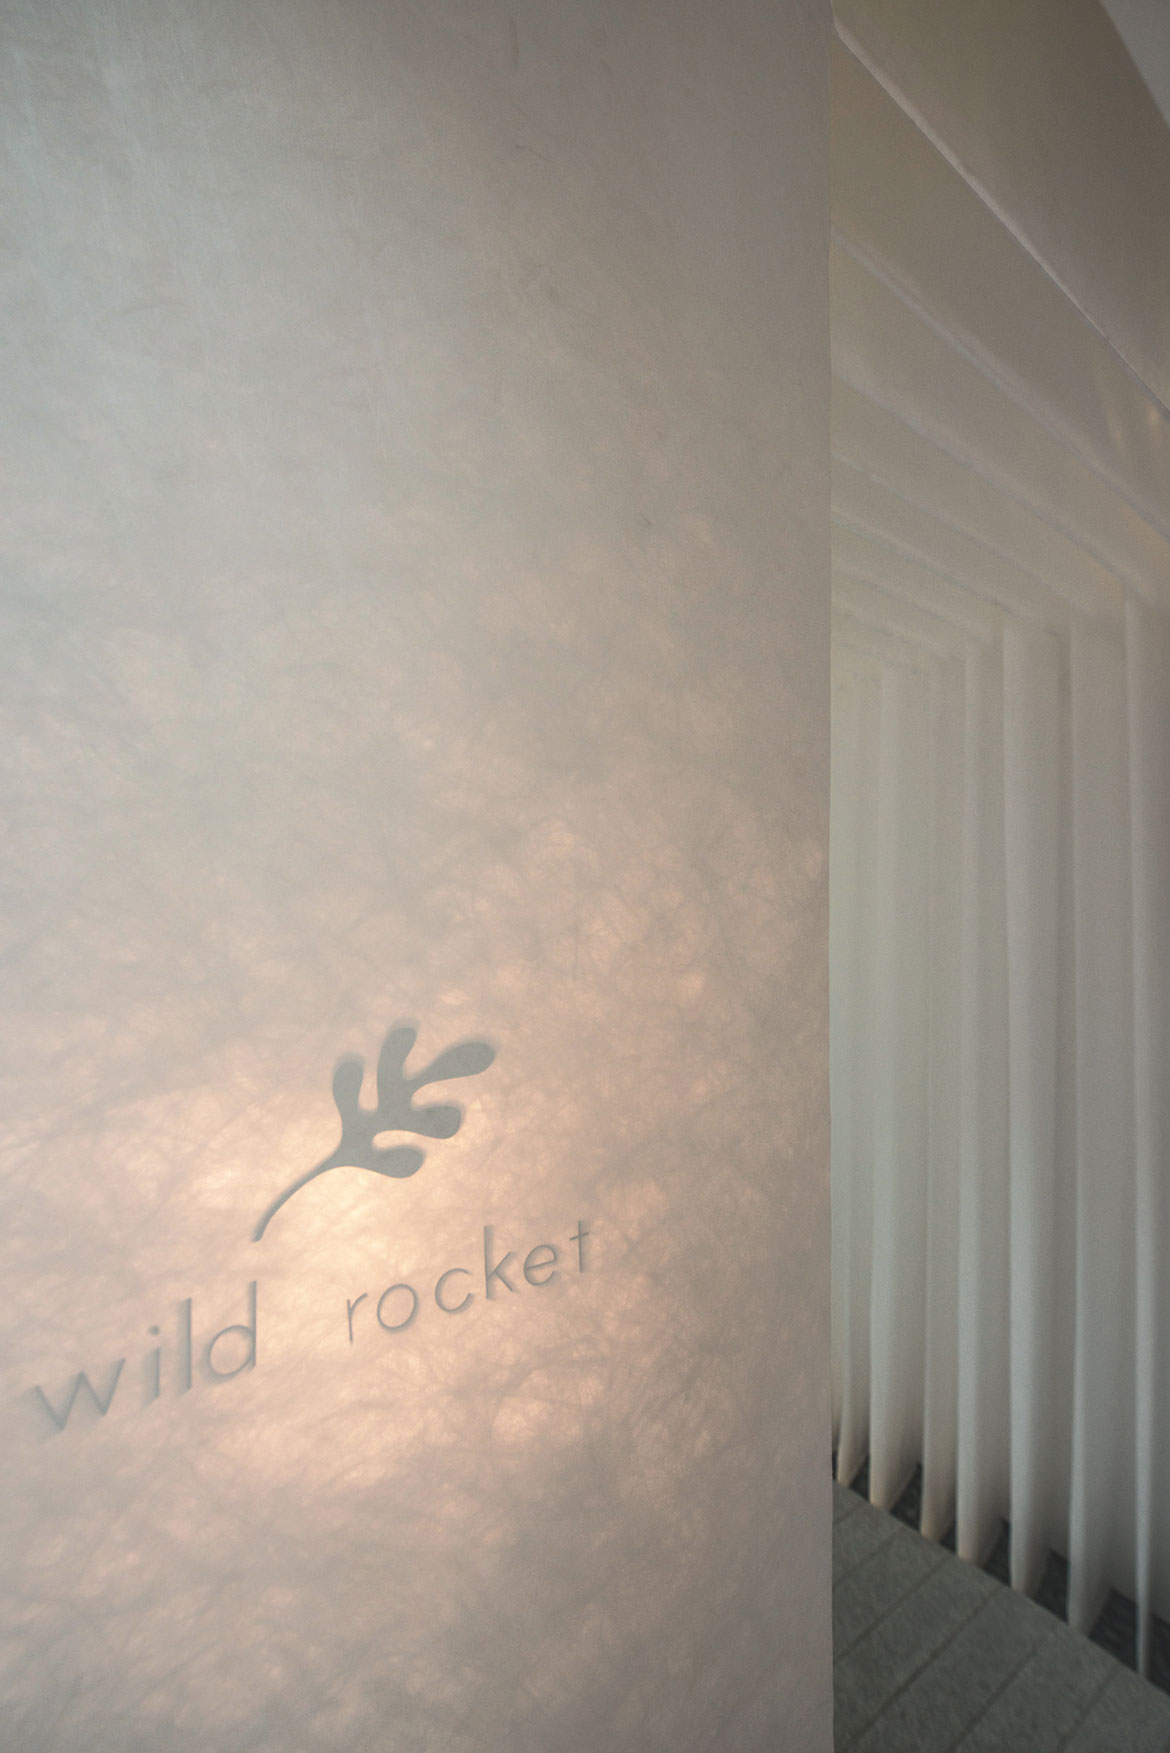 Wild Rocket PRODUCE Singapore entrance